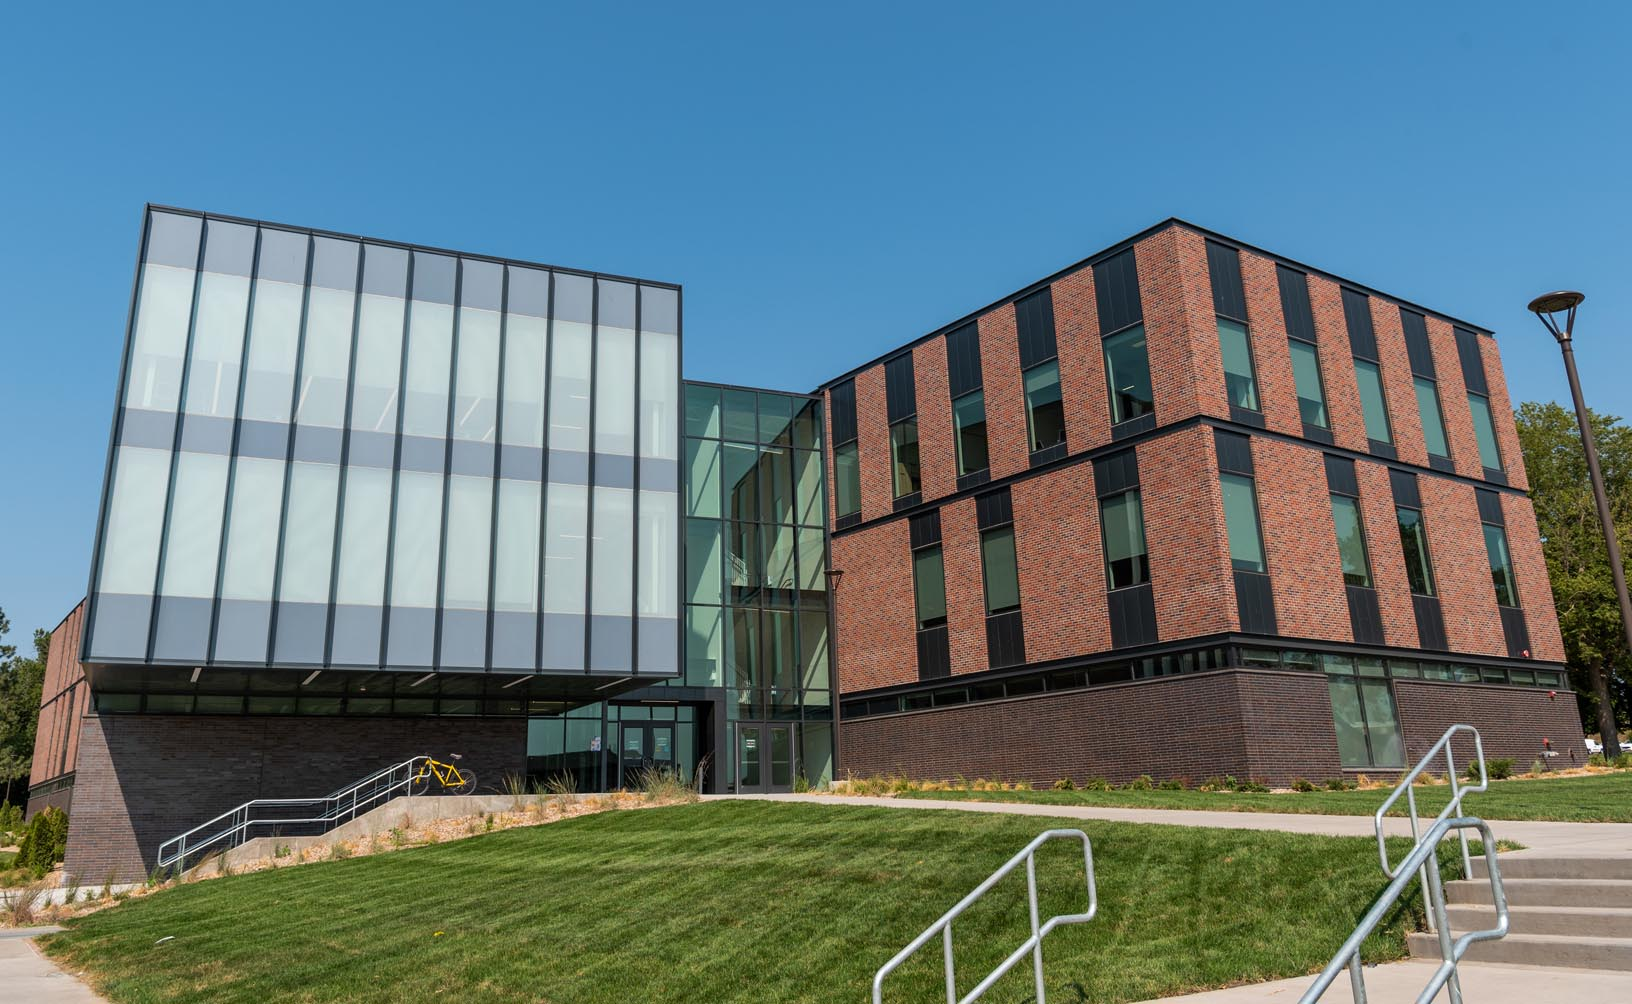 More than a dozen academic programs are housed in Discovery Hall, the newest building on the UNK campus. Classes began last week in the 90,000-square-foot STEM facility.